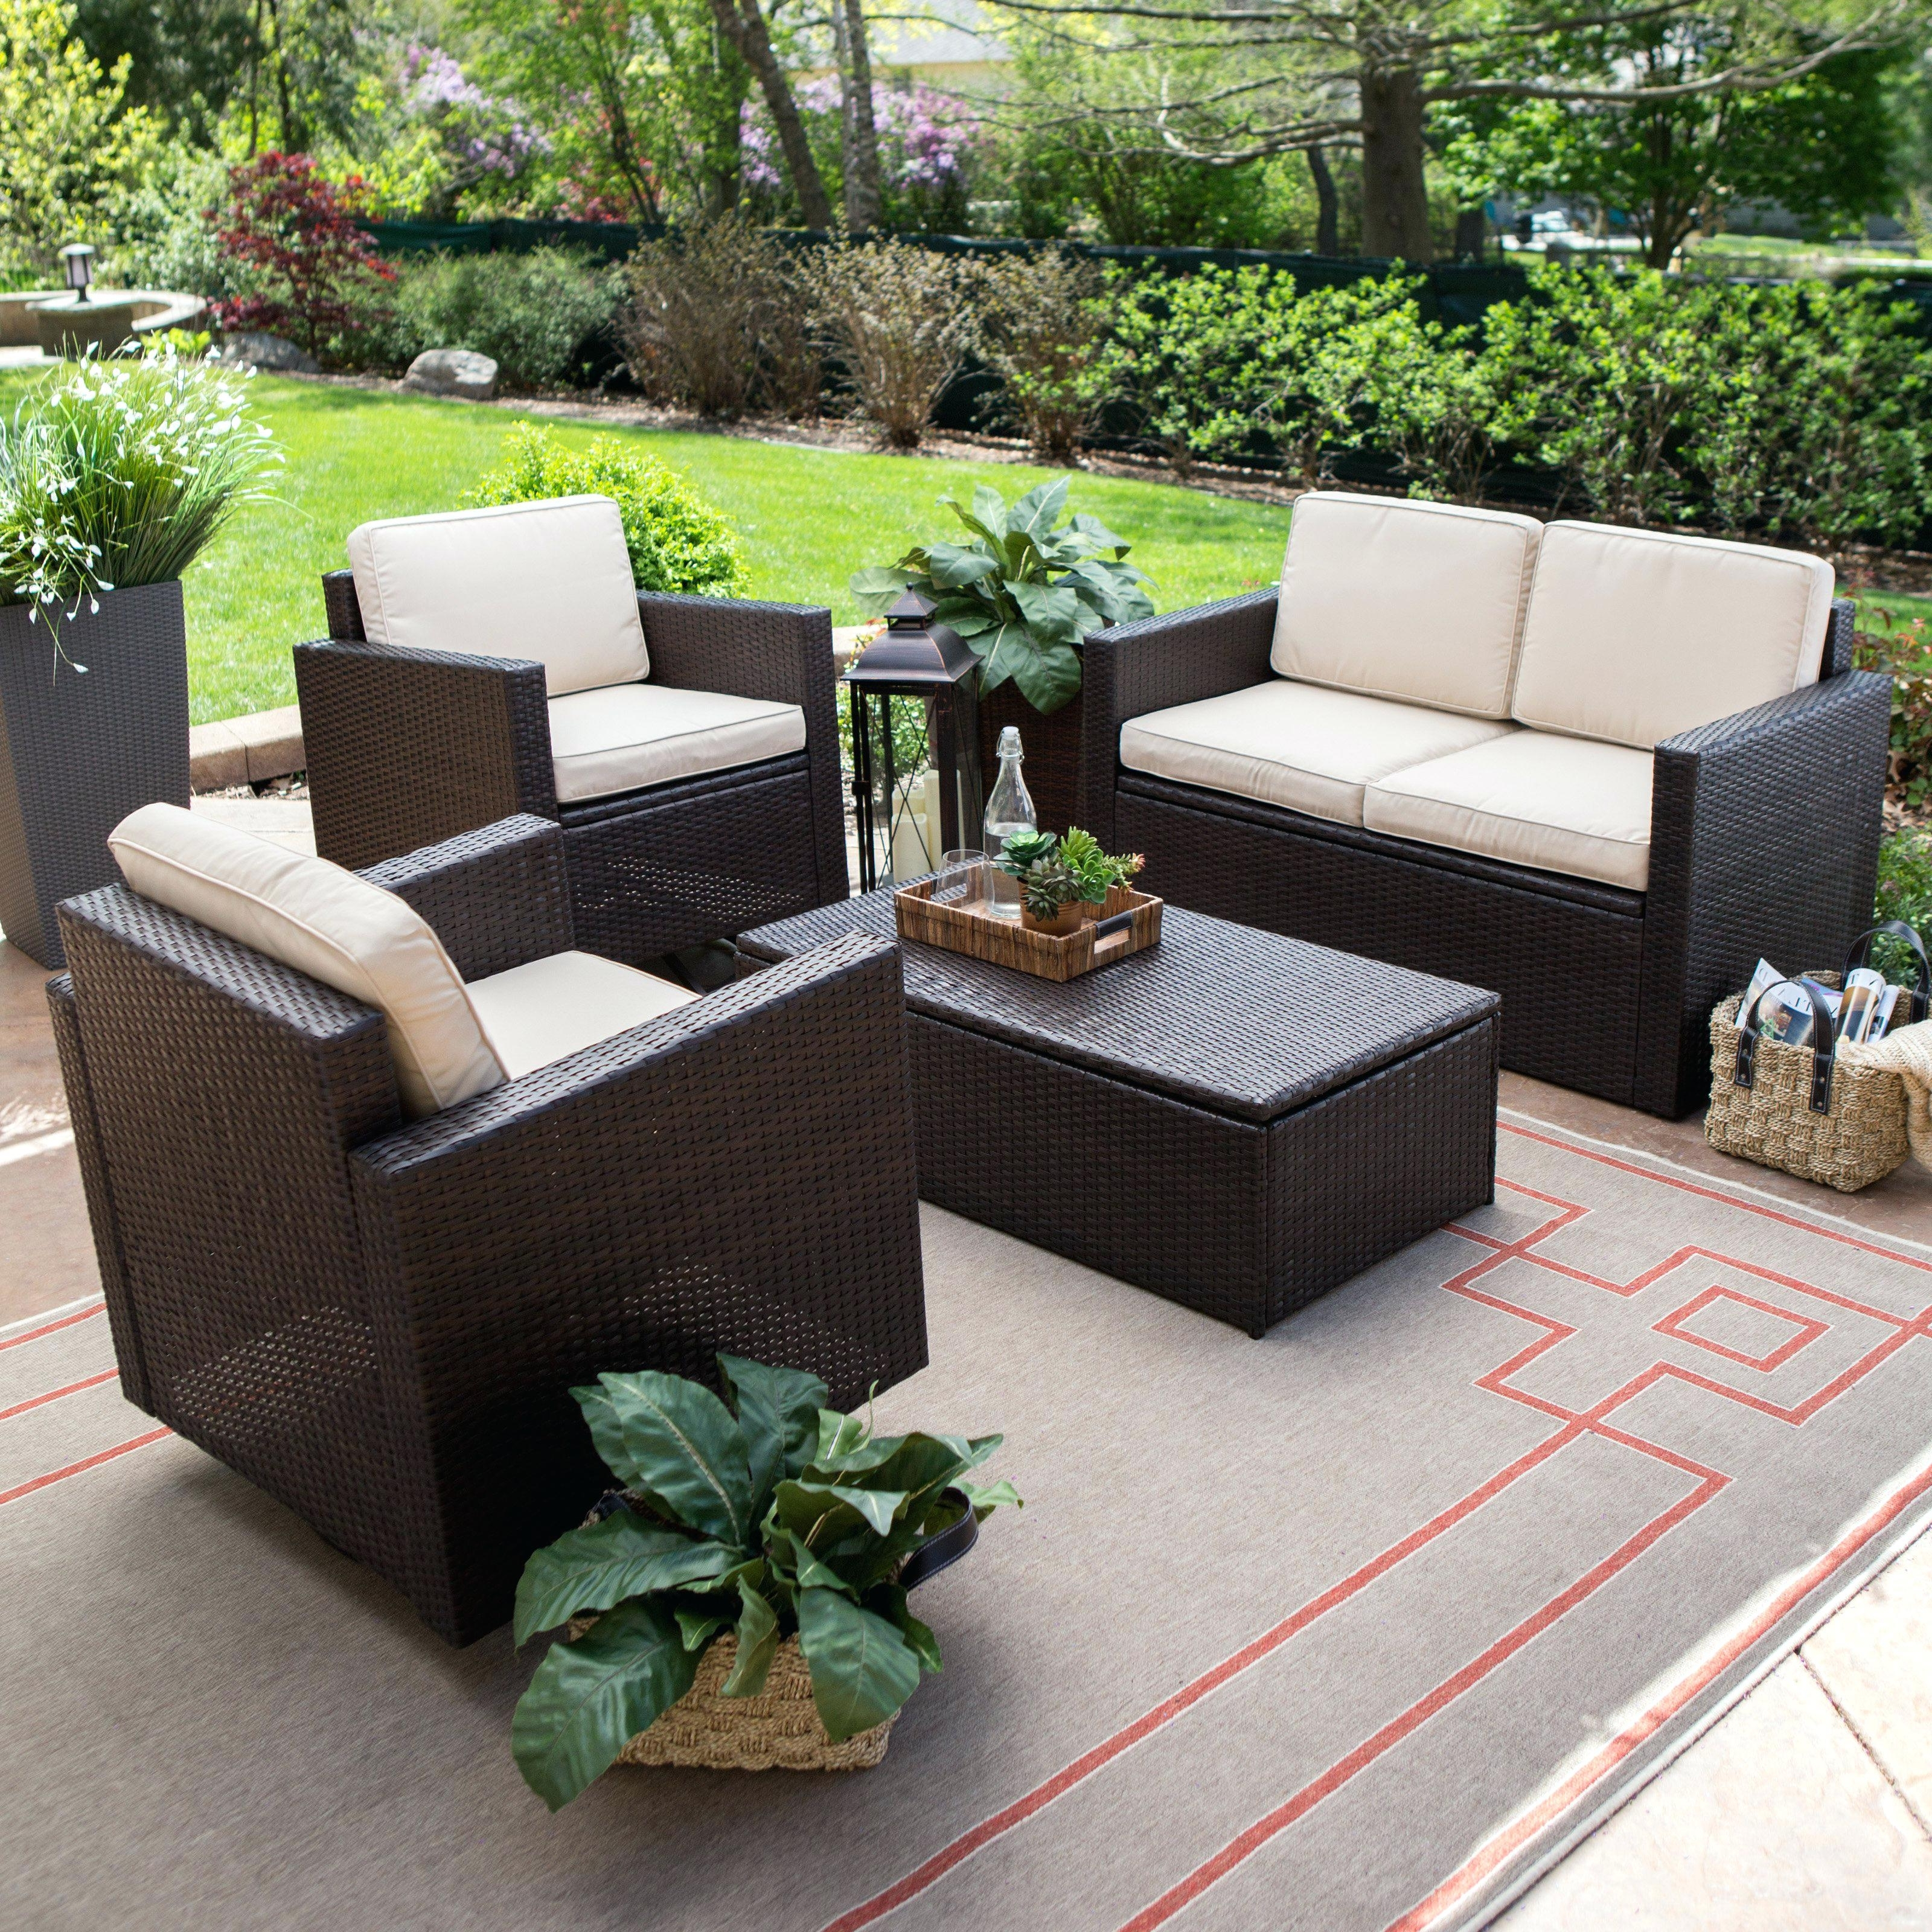 Patio Conversation Sets Coral Coast Wicker 4 Piece Conversation Set With Most Recently Released 4 Piece Patio Conversation Sets (View 15 of 20)